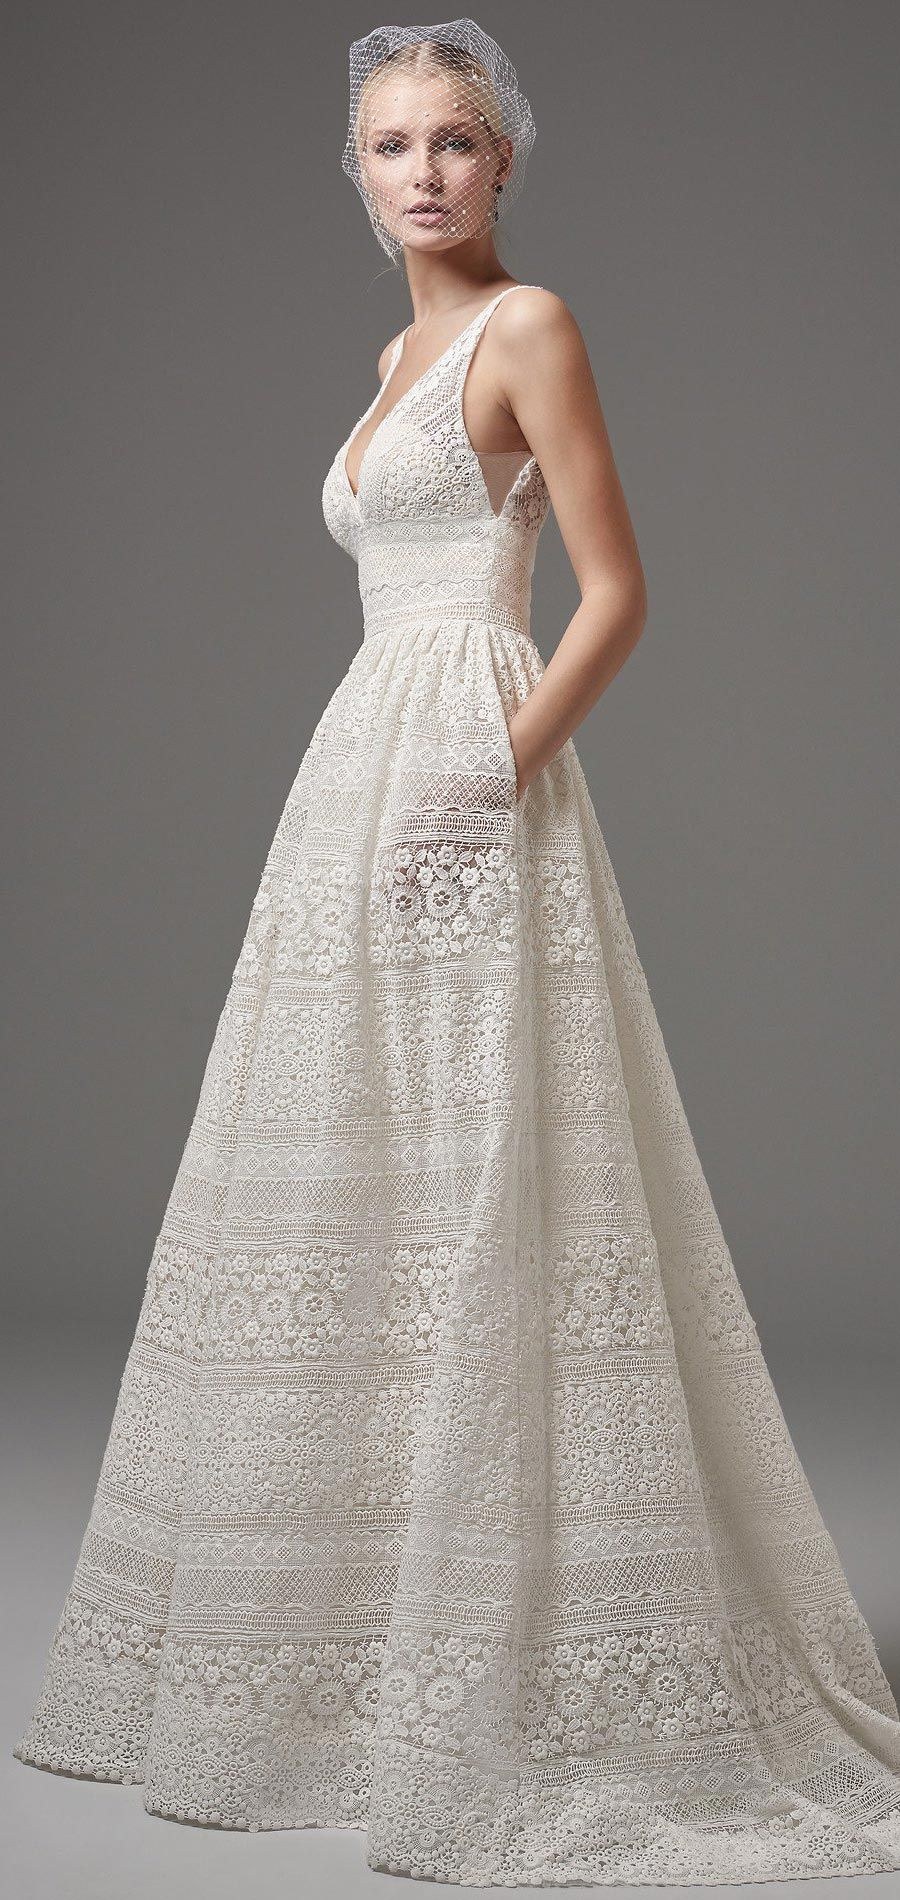 ... boho-inspired V-neck A-line gown featuring sheer pockets and patterns  of eyelet lace a27391a9f6b0